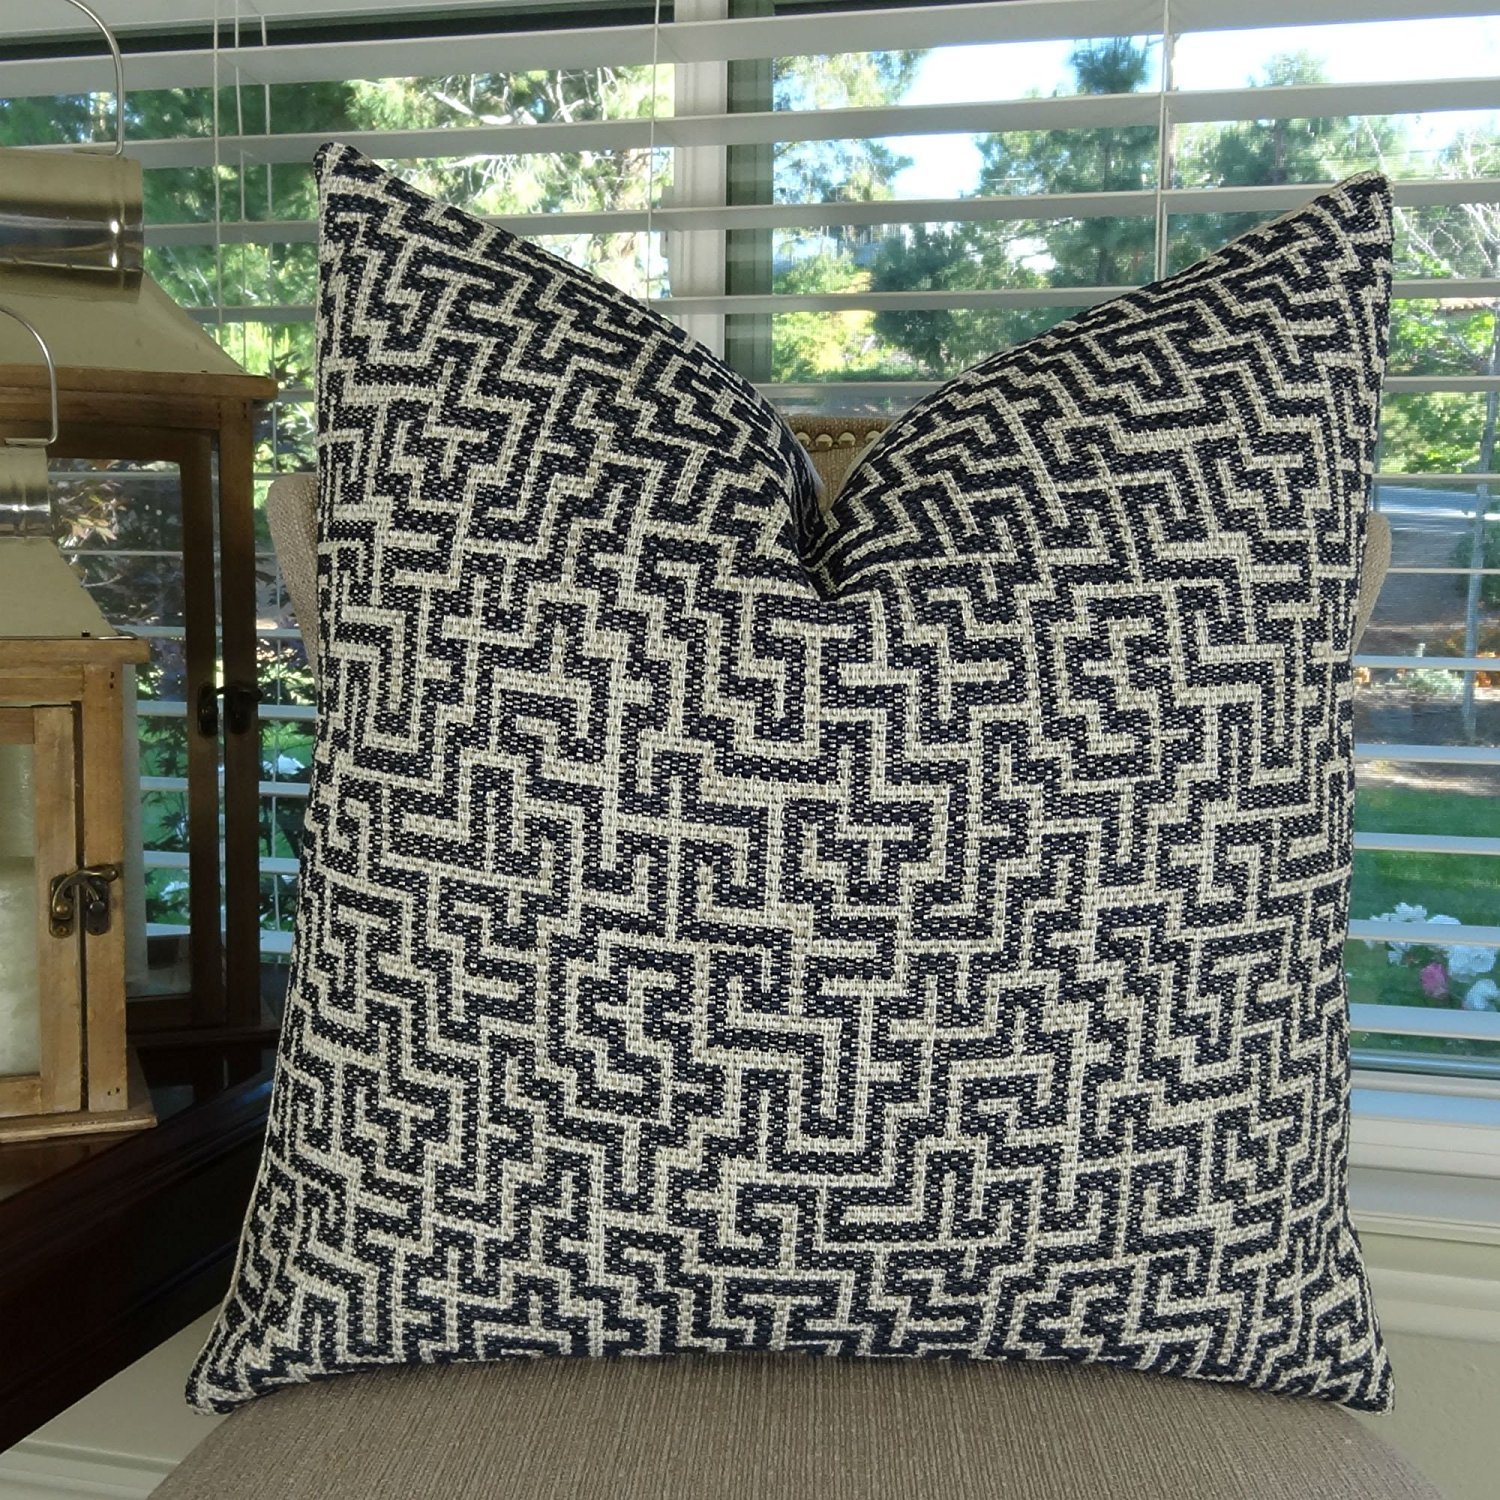 Thomas Collection Navy Pillow - Navy Ivory Taupe Throw Pillow - Navy Geometric Pillow - Navy Ivory Taupe Patterned Accent Pillow - Geometric Pillow, Made in US, 11424